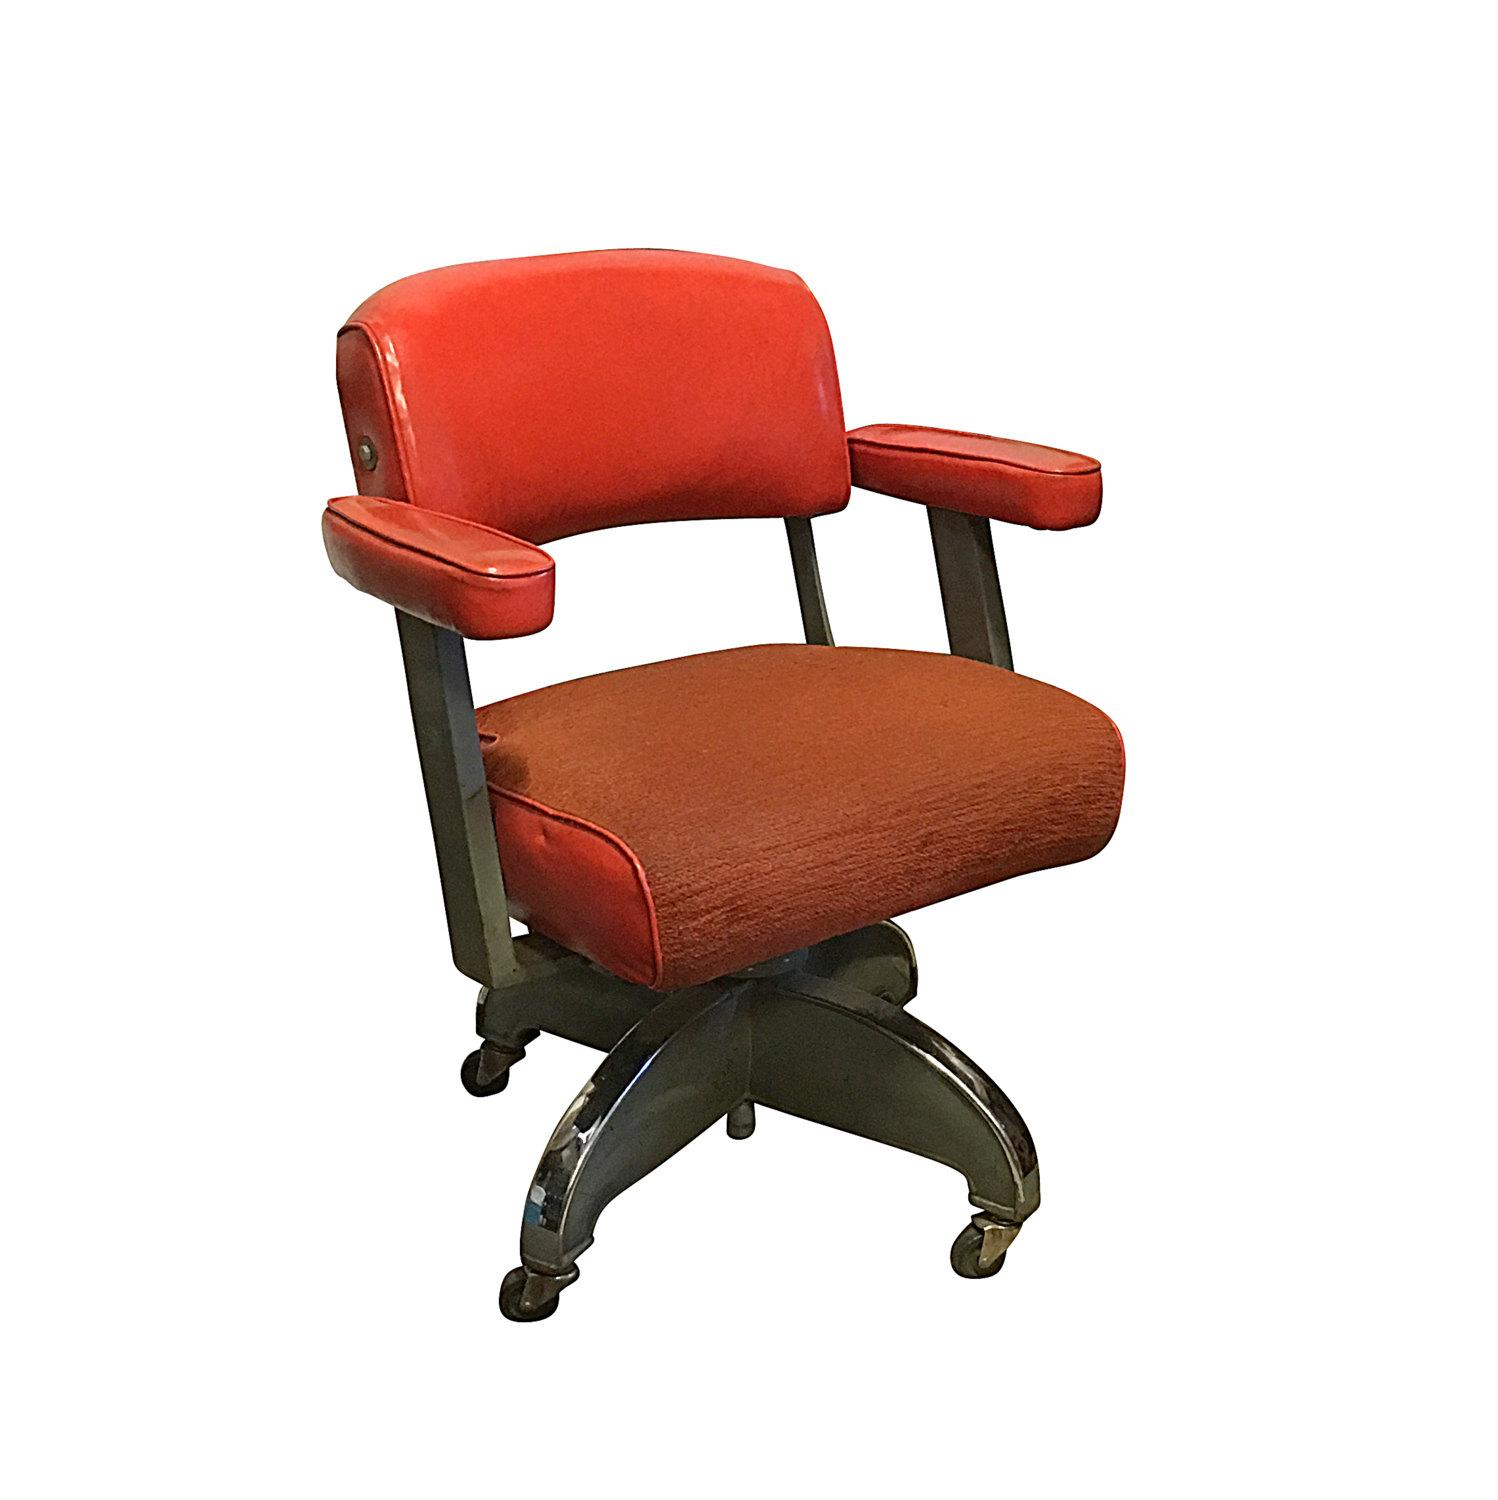 Mid Century Modern Office Chair 1950s Orange Mid Century Modern Office Chair Chairish